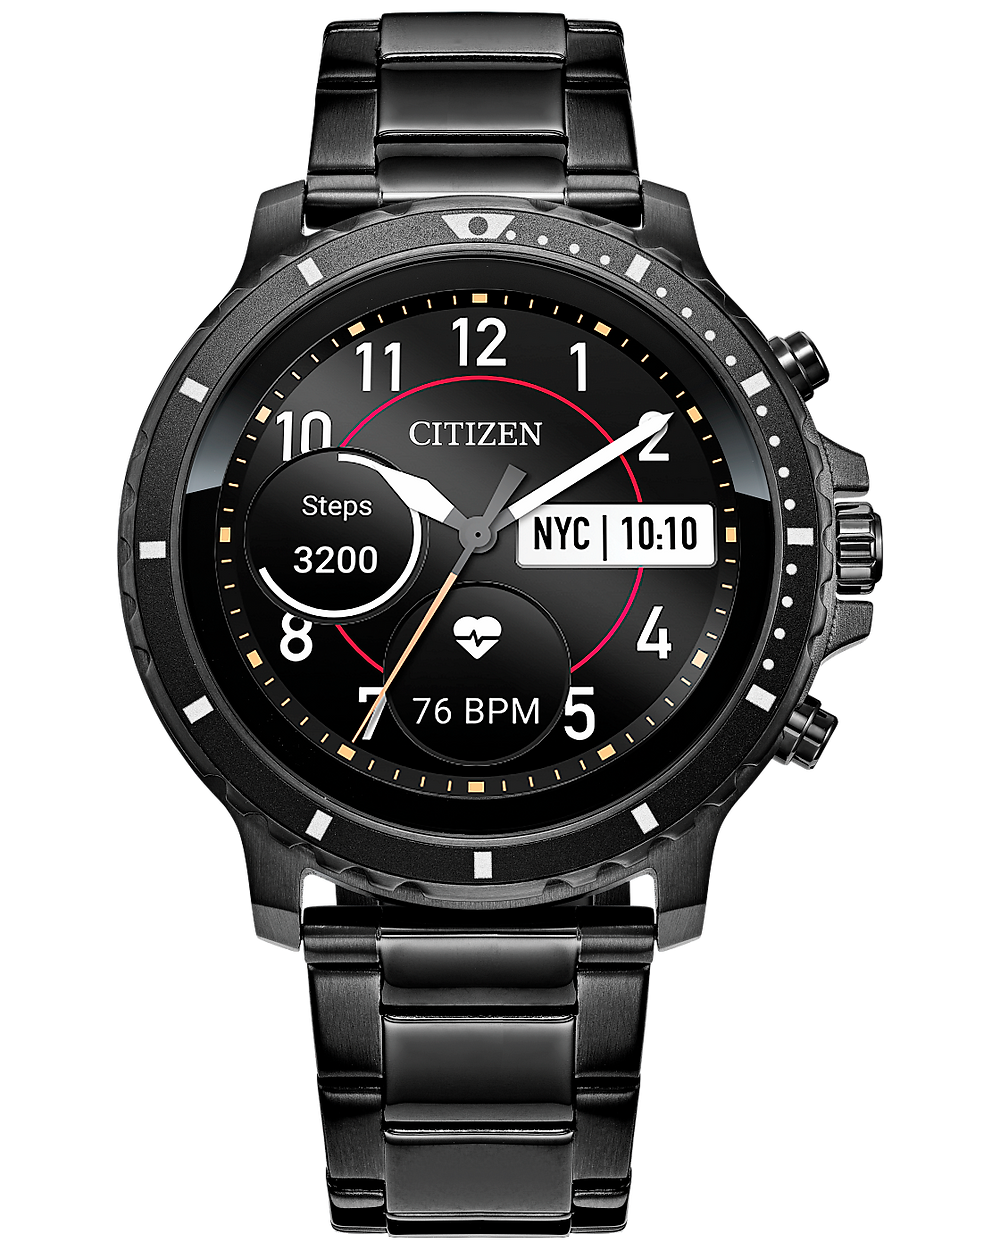 Reloj Citizen android wear modelo CZ Smart referencia MX0007-59X